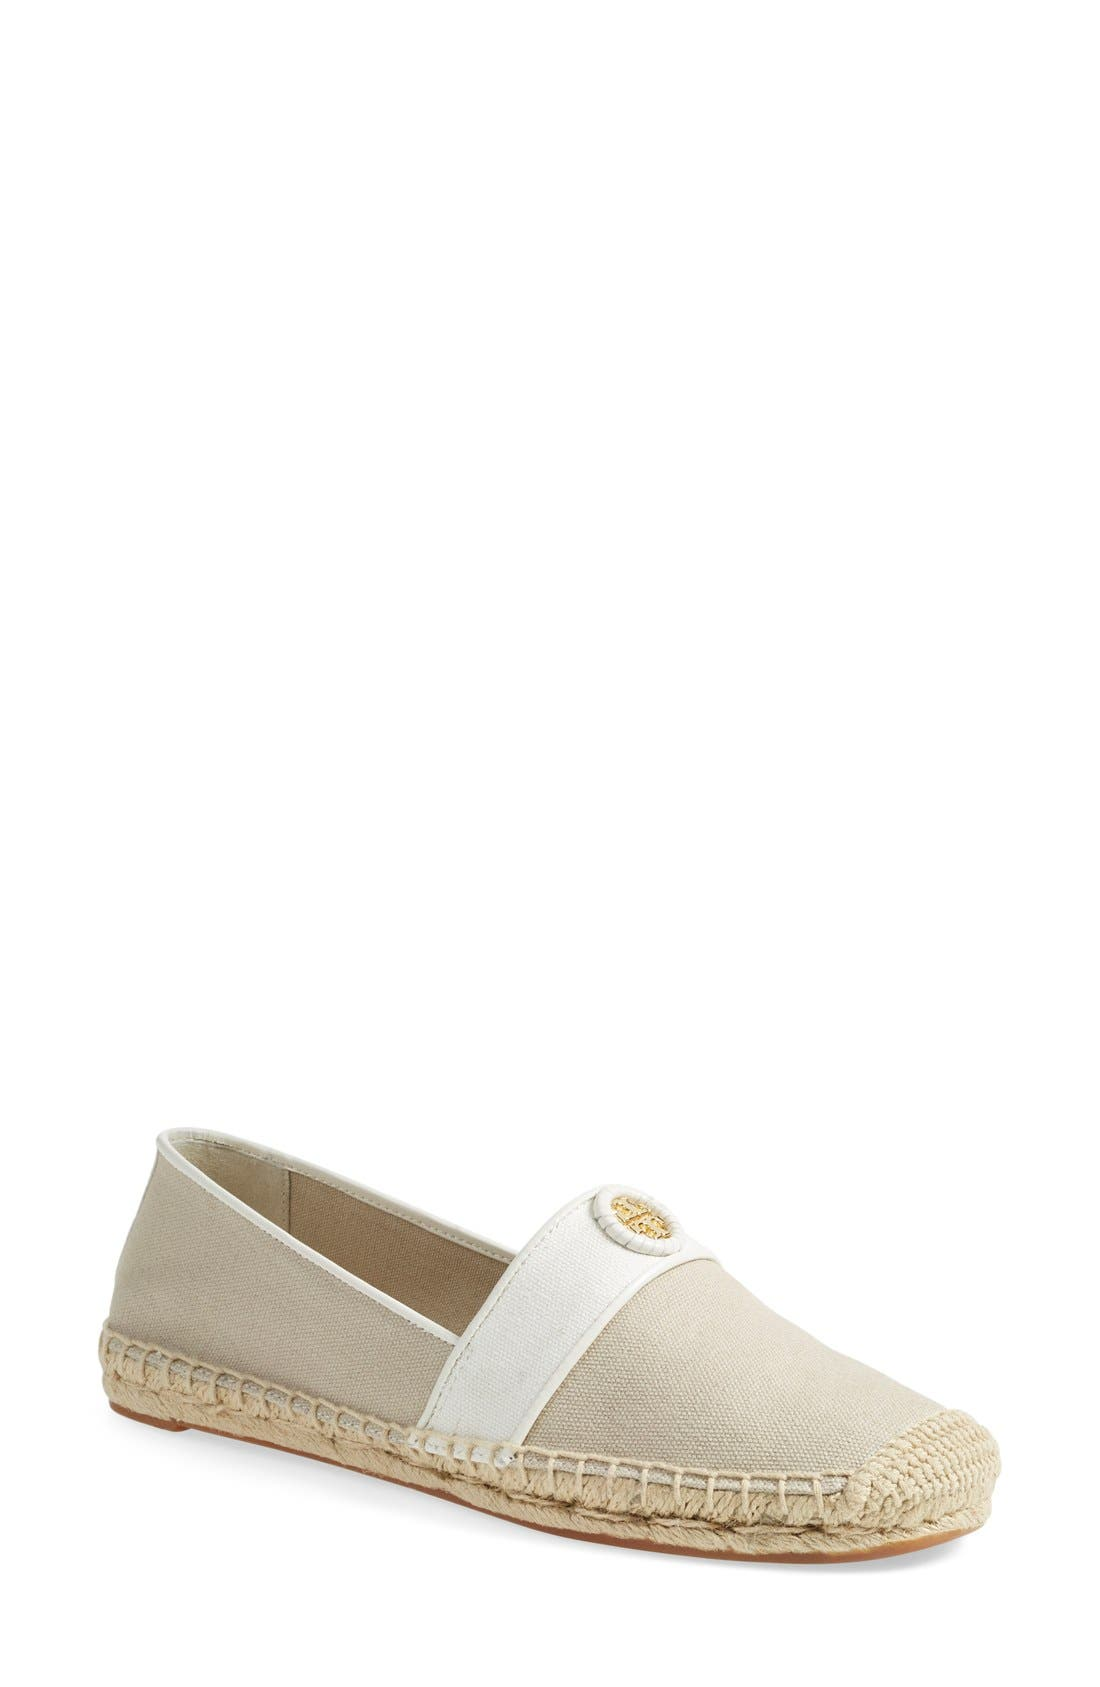 Main Image - Tory Burch 'Lacey' Espadrille Flat (Women) (Nordstrom Exclusive)